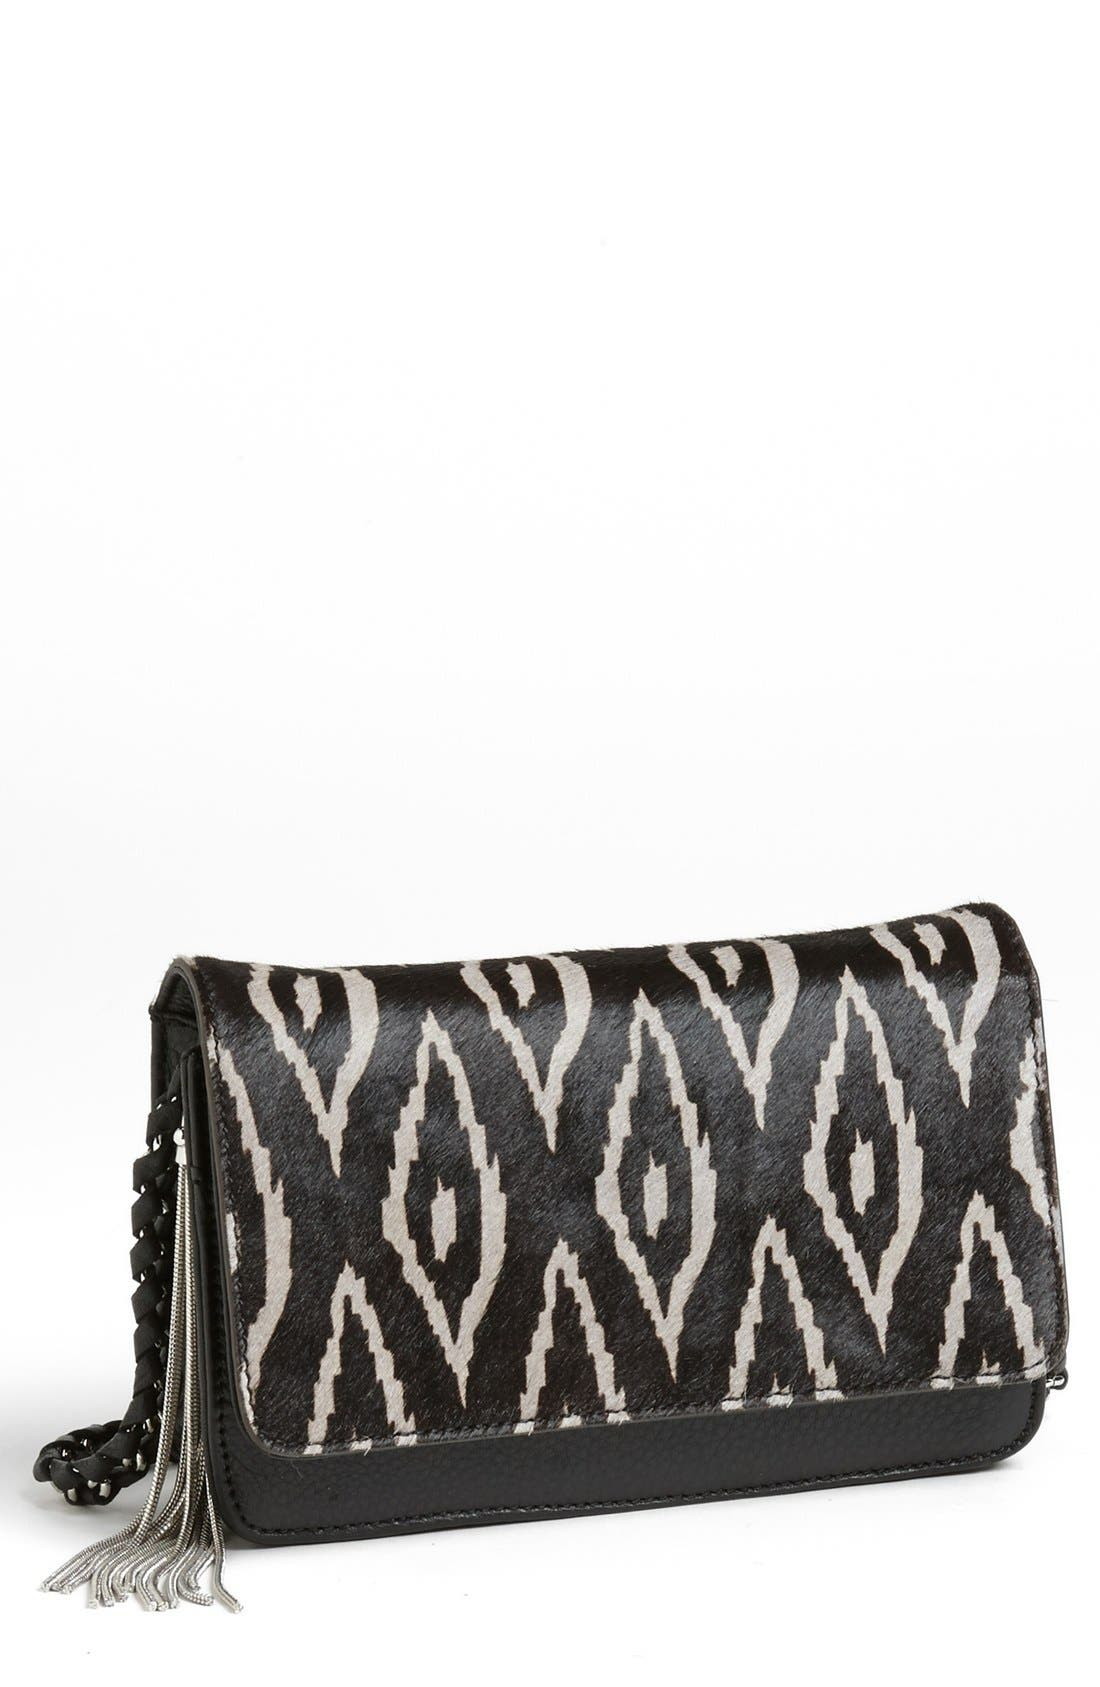 Alternate Image 1 Selected - Aimee Kestenberg 'Alexis' Crossbody Bag